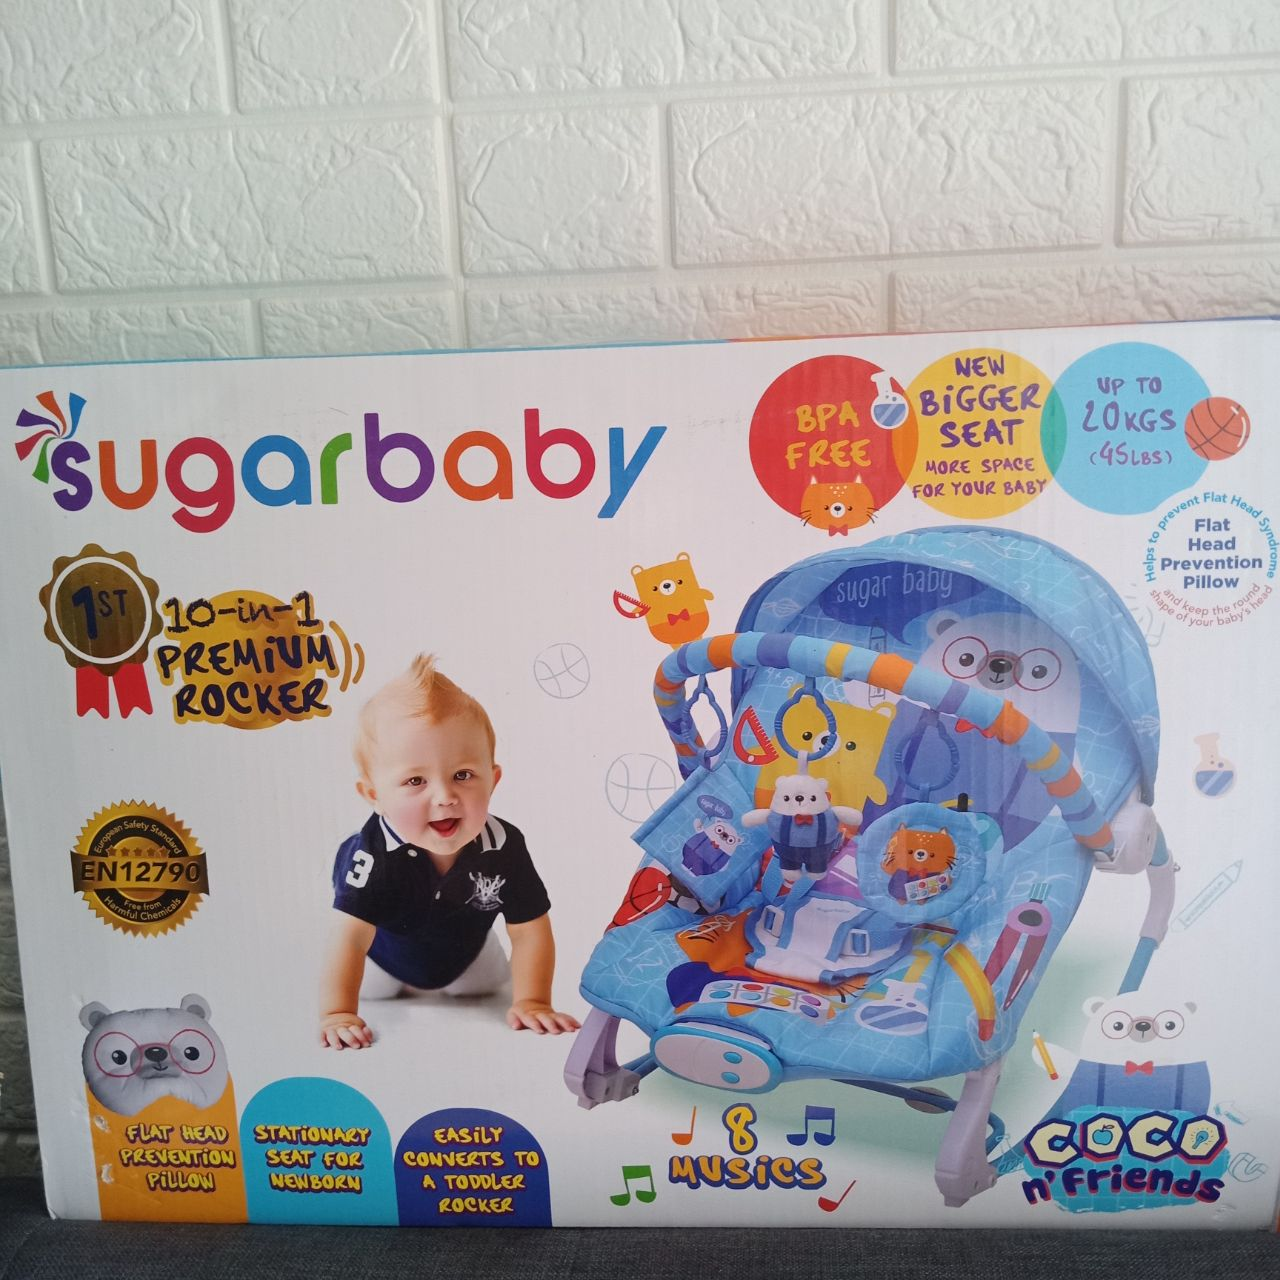 Sugarbaby bouncer 10 in 1 type Coco & Friends